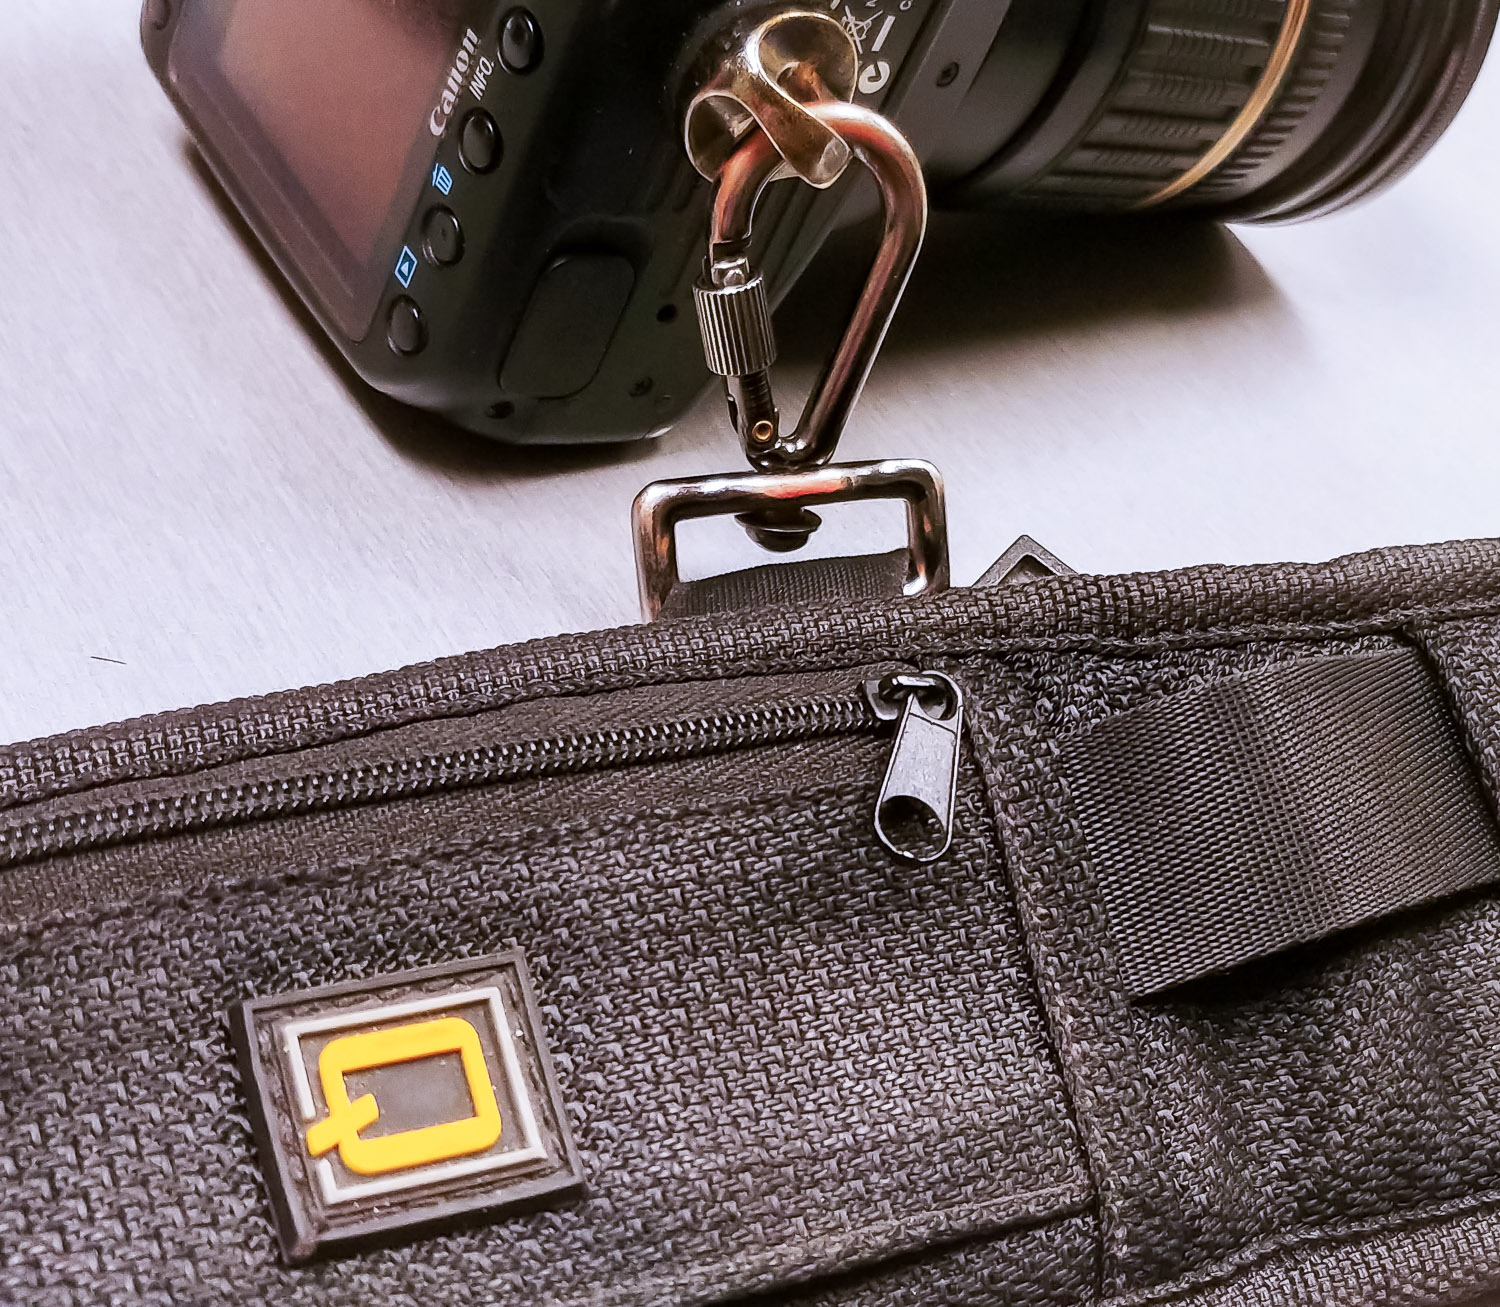 Image: a sling-style camera strap attached to the bottom tripod hole of a camera with ...